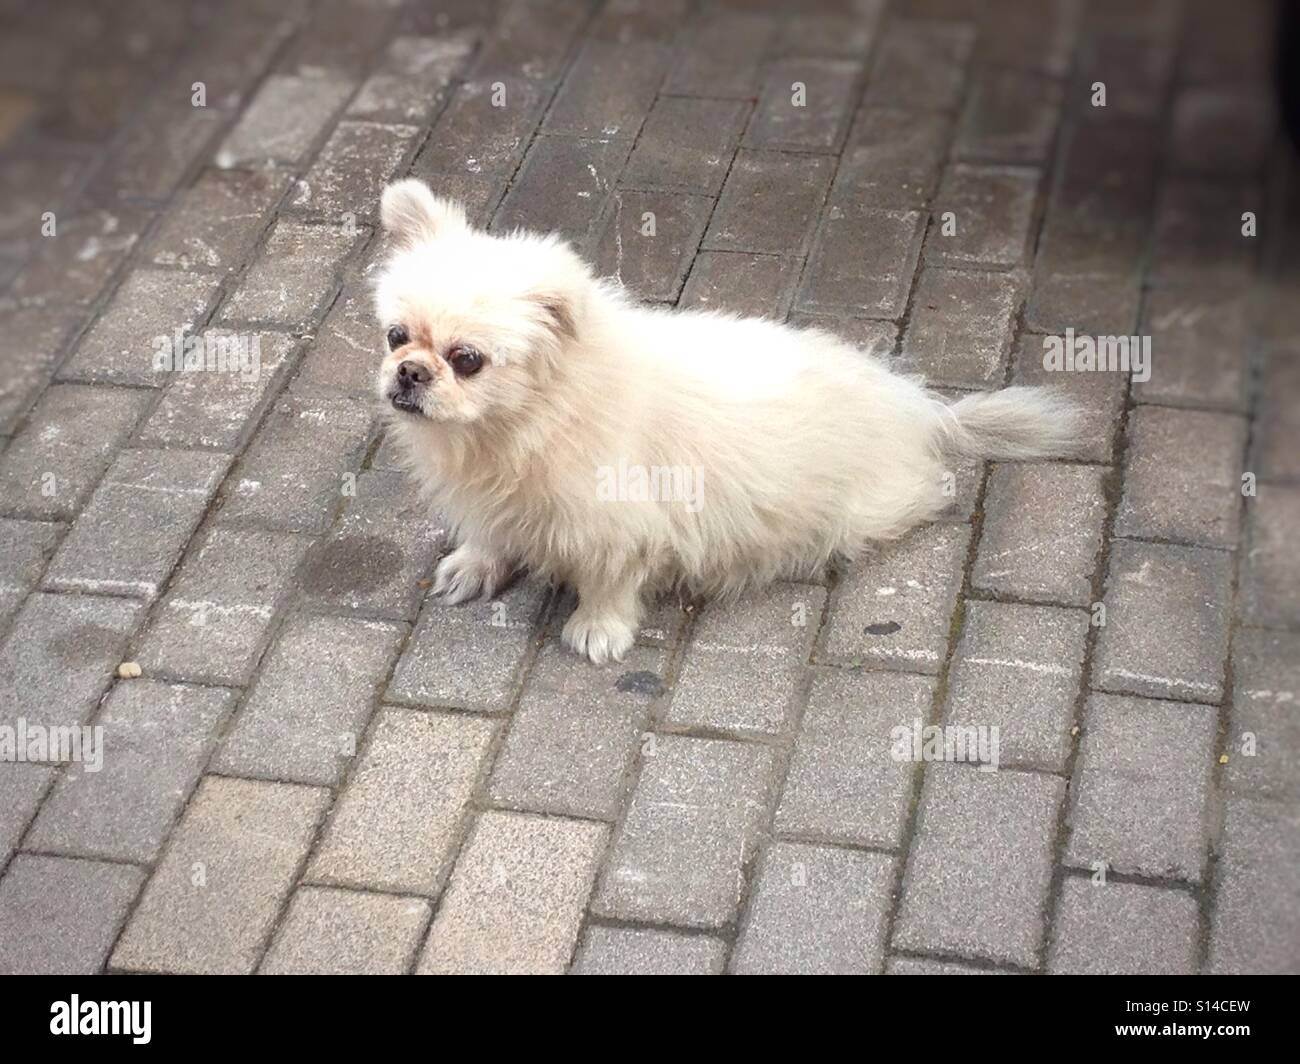 Cute, White Fluffy Puppy Dog Relaxing & Chilling Out On The Sidewalk Pavement, Kawaii Pets - Stock Image